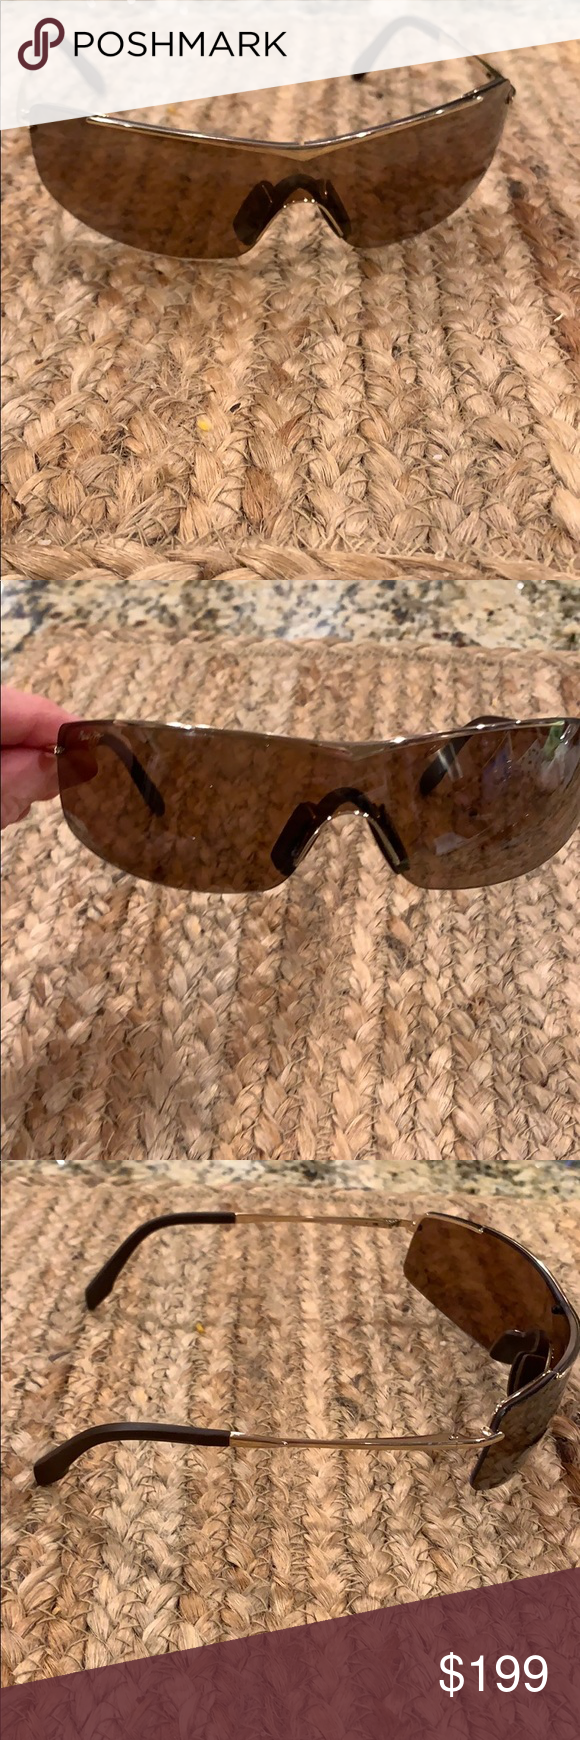 cba4669c0f Maui Jim Sunglasses MJ-511-16 Maui Jim Sandbar Sunglasses MJ-511-16  brown/gold. These glasses are in perfect condition, no marks or scratches. Metal  frame ...